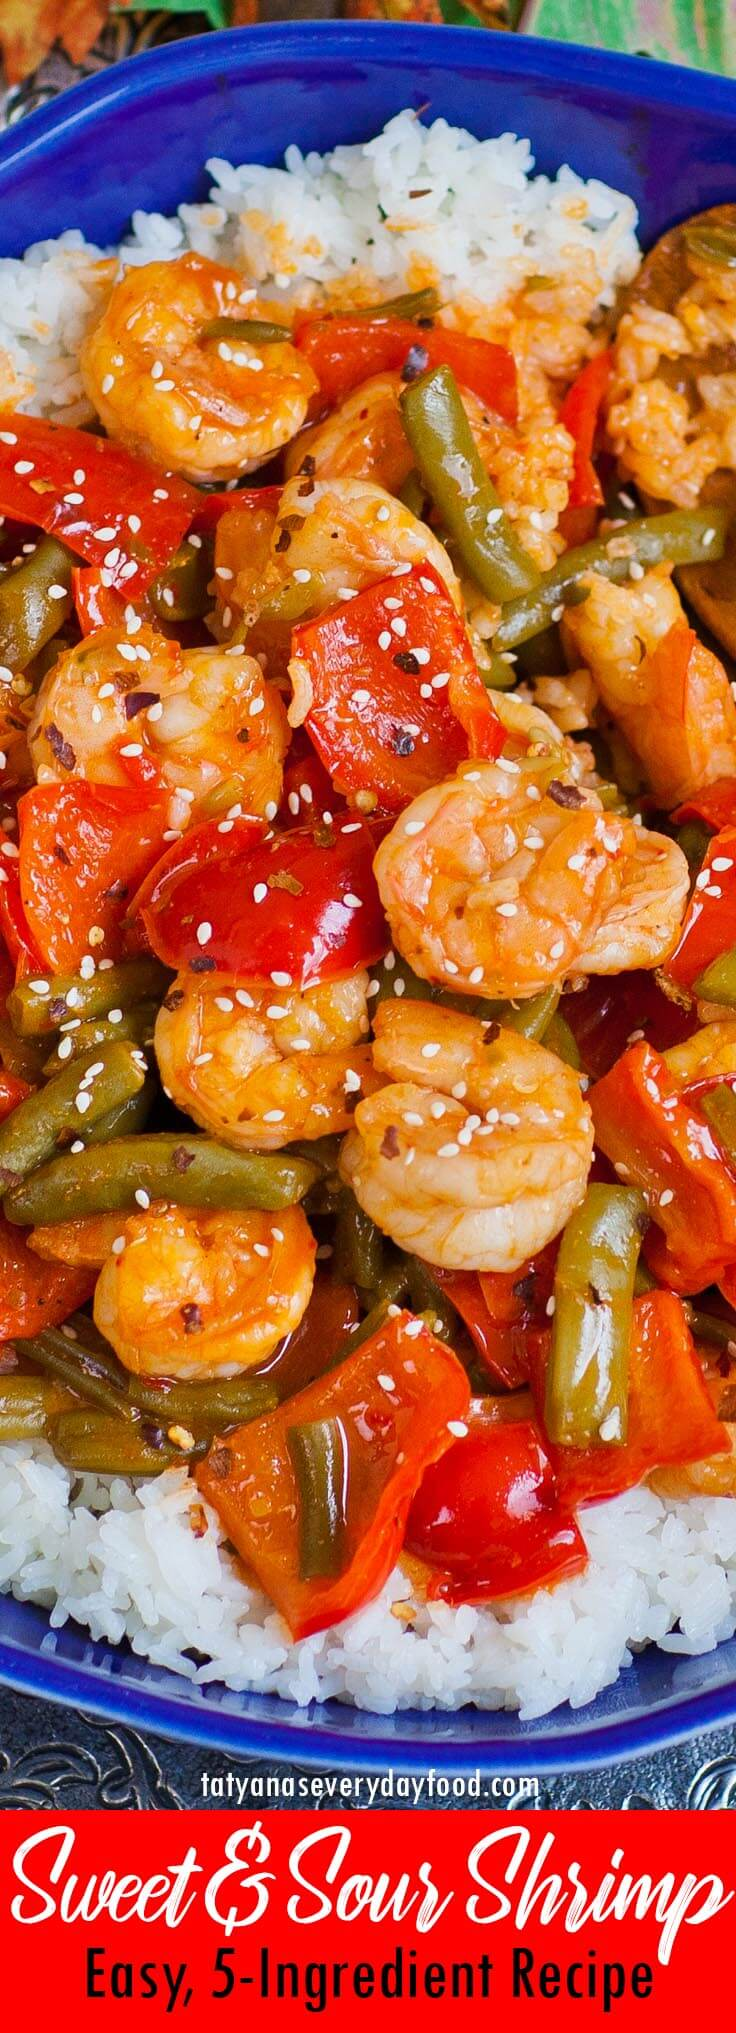 Sweet and Sour Shrimp video recipe